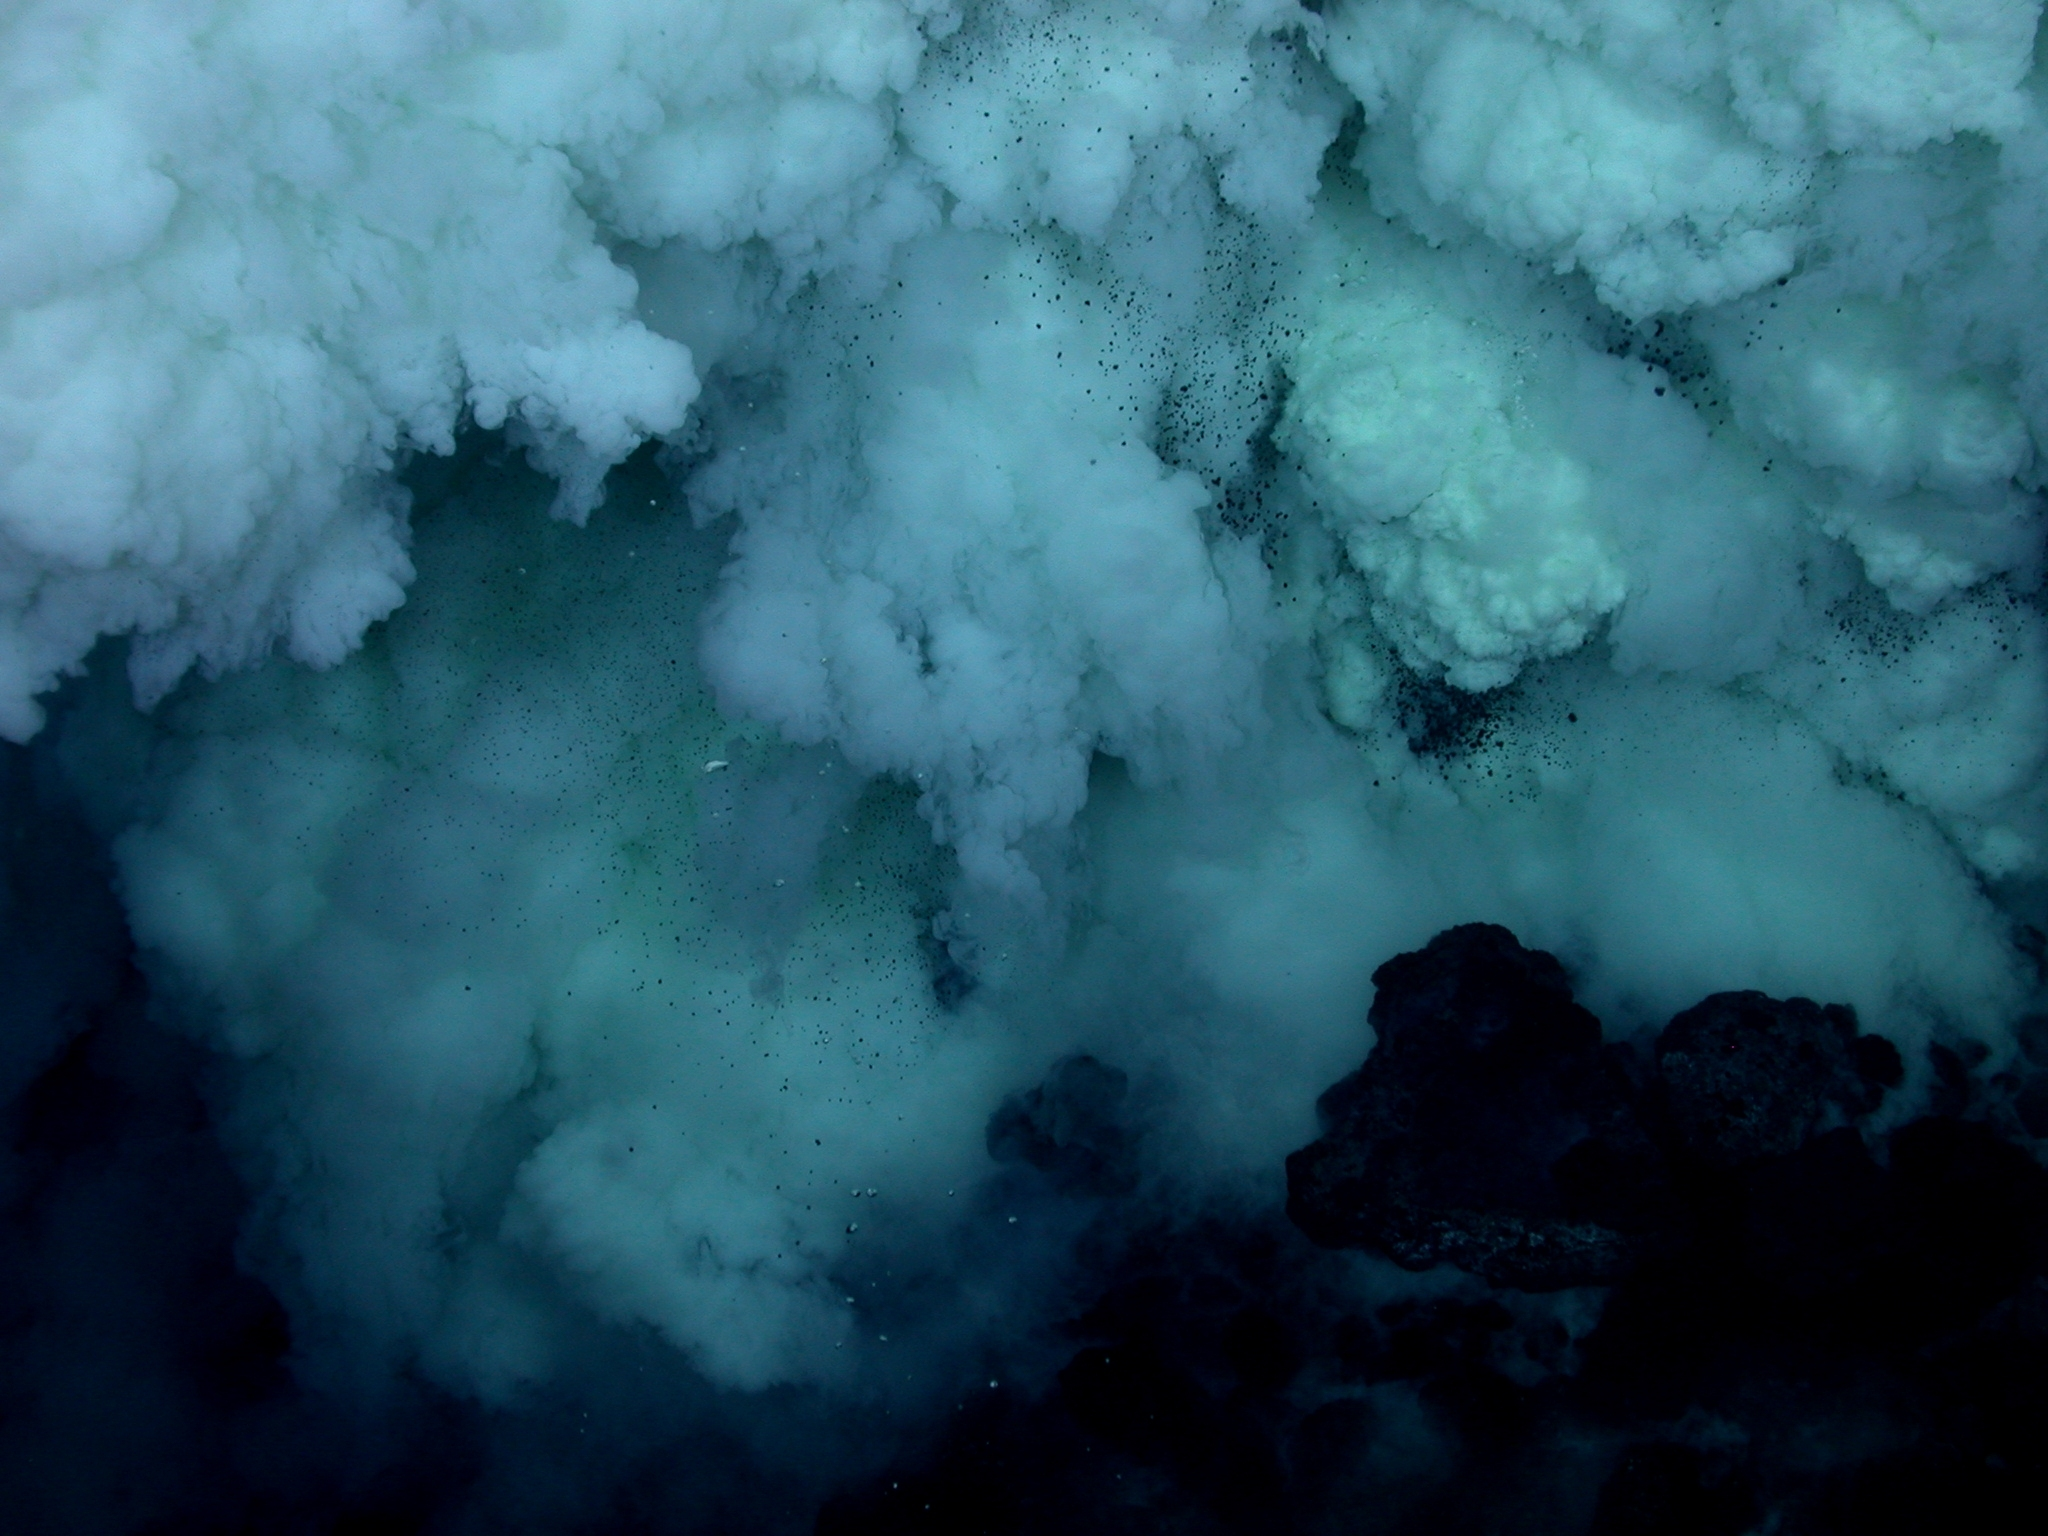 Deep sea mining must be stopped to prevent incalculable damage to humans and wildlife